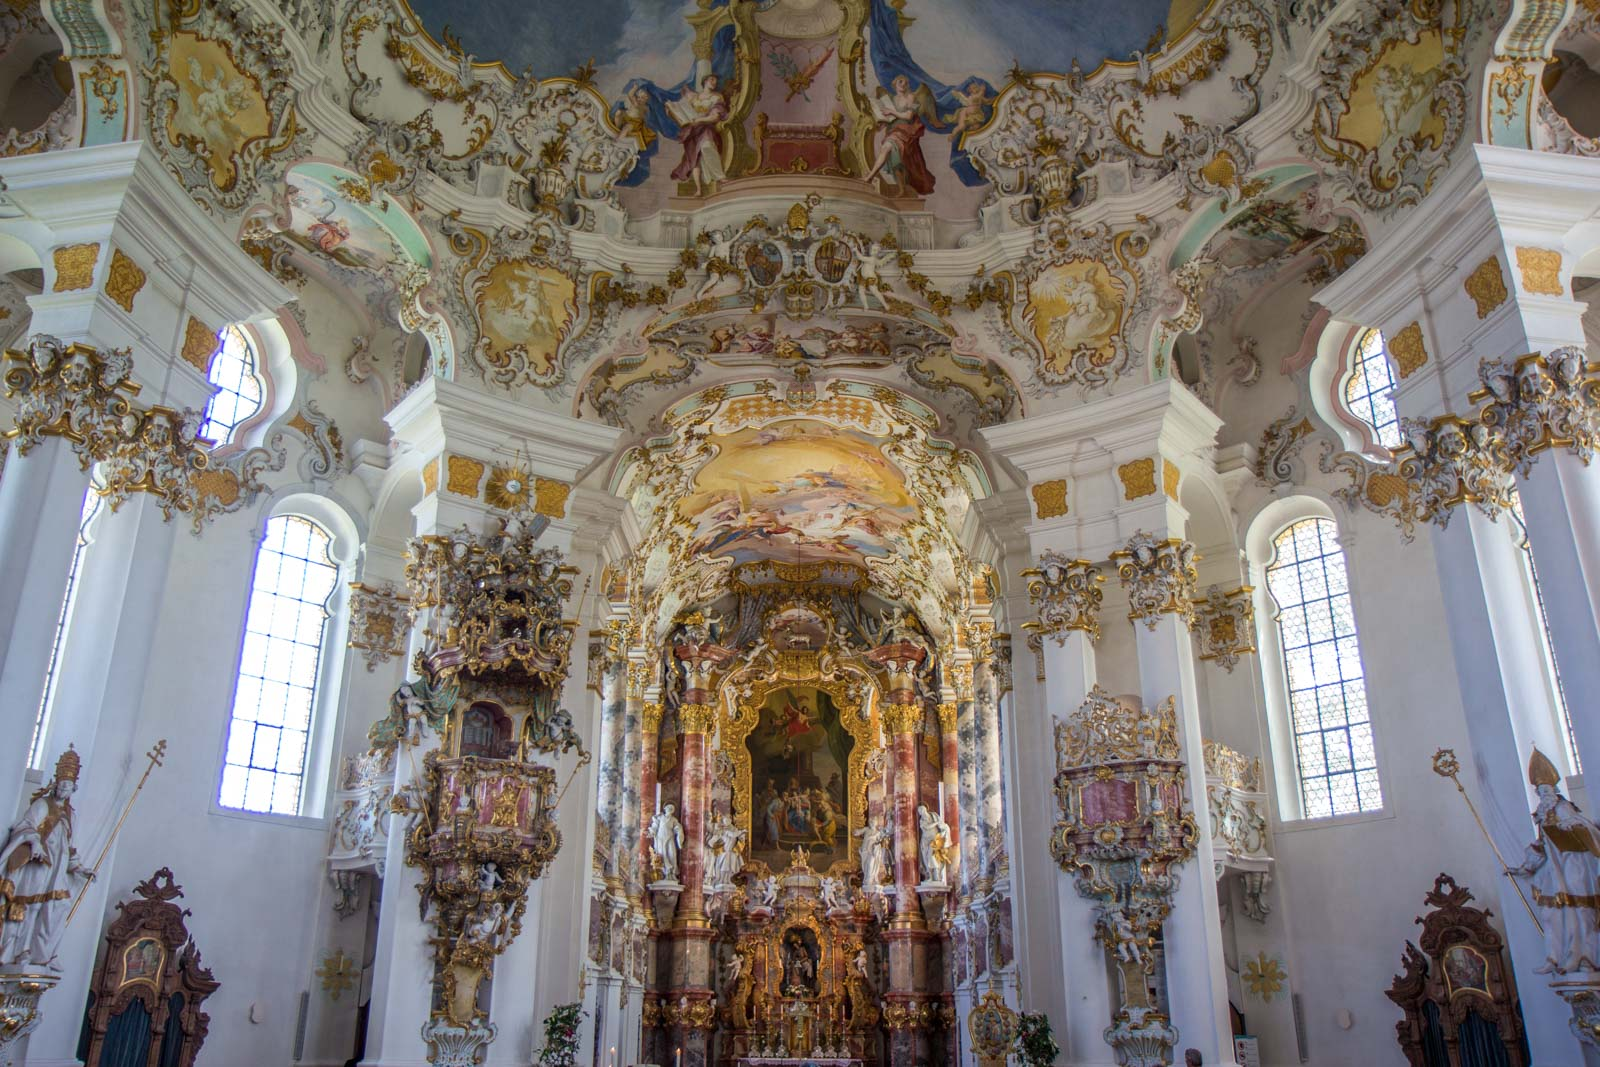 Pilgrimage Church of Wies, Germany